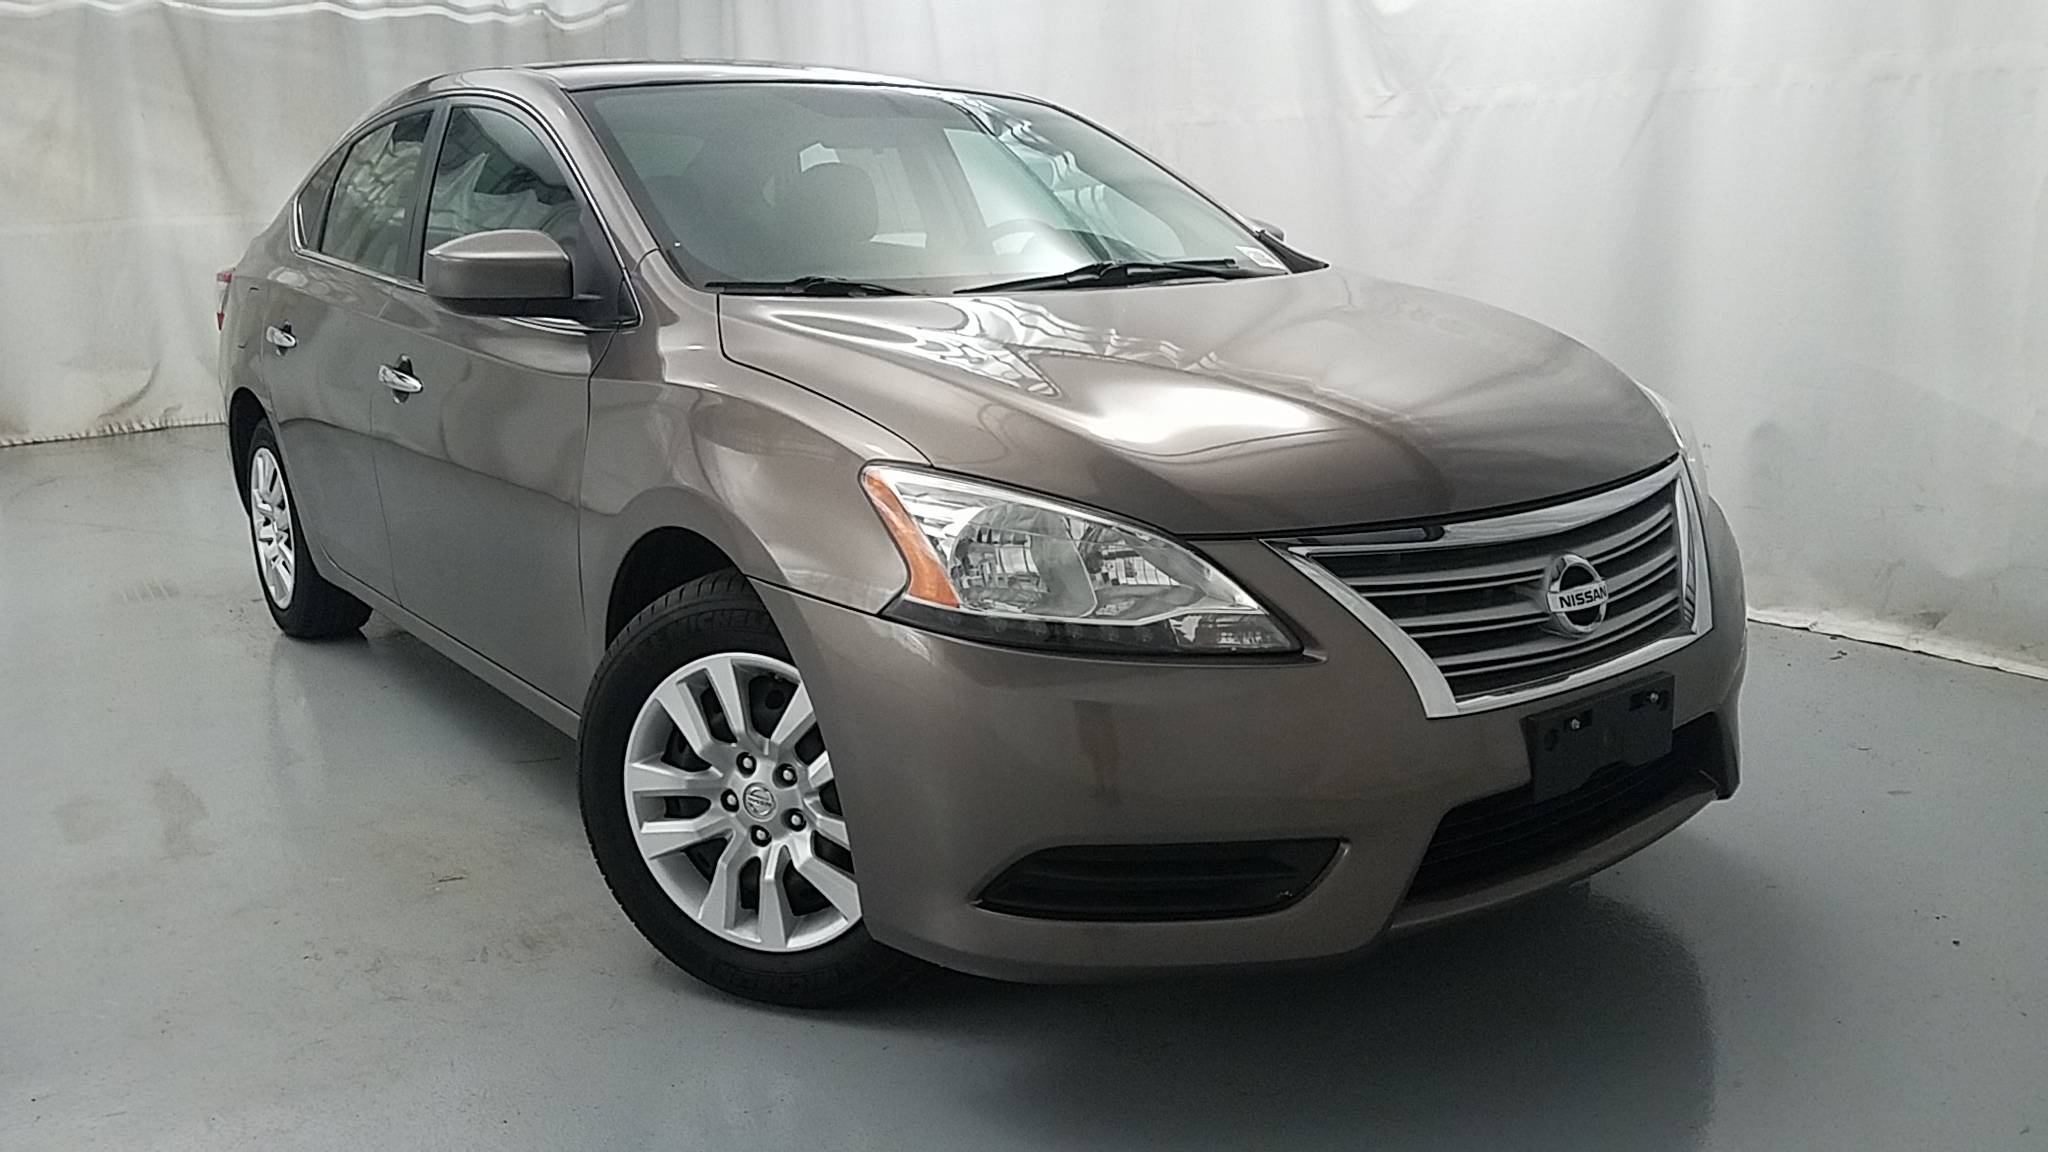 2015 Nissan Sentra Vehicle Photo In Hammond, LA 70403